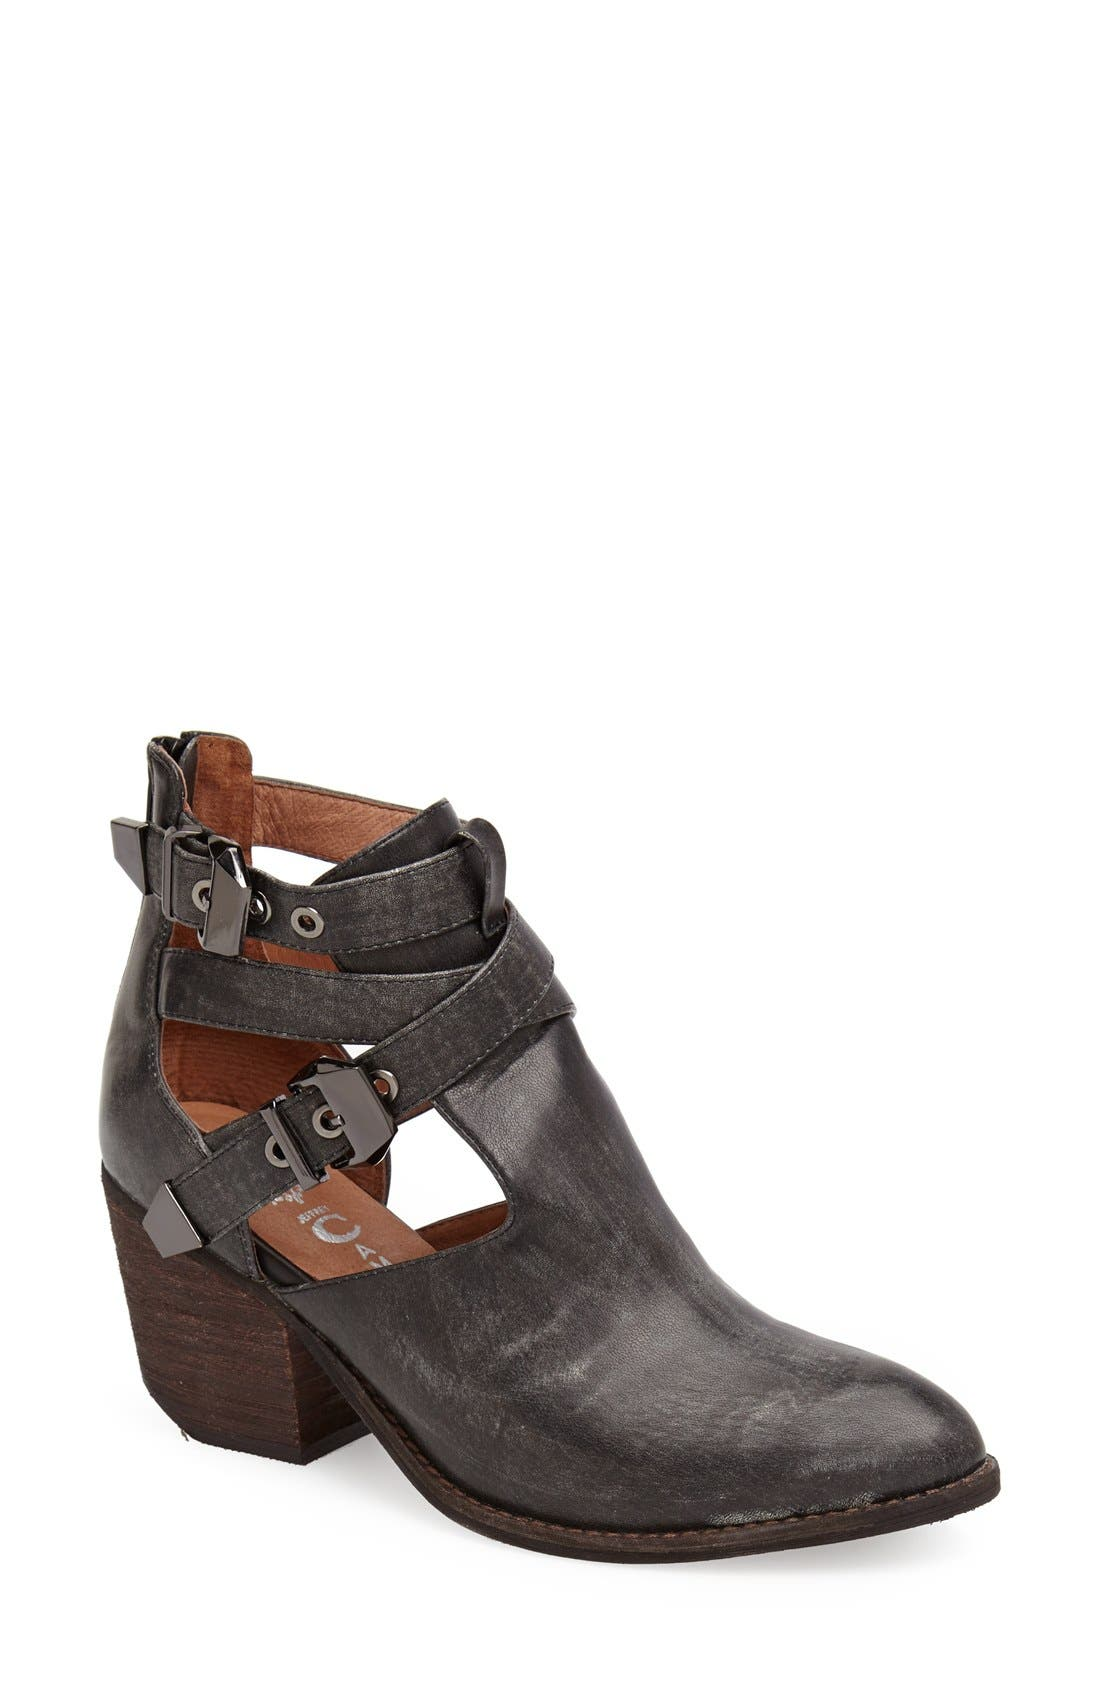 'Everwell' Boot,                             Main thumbnail 1, color,                             010